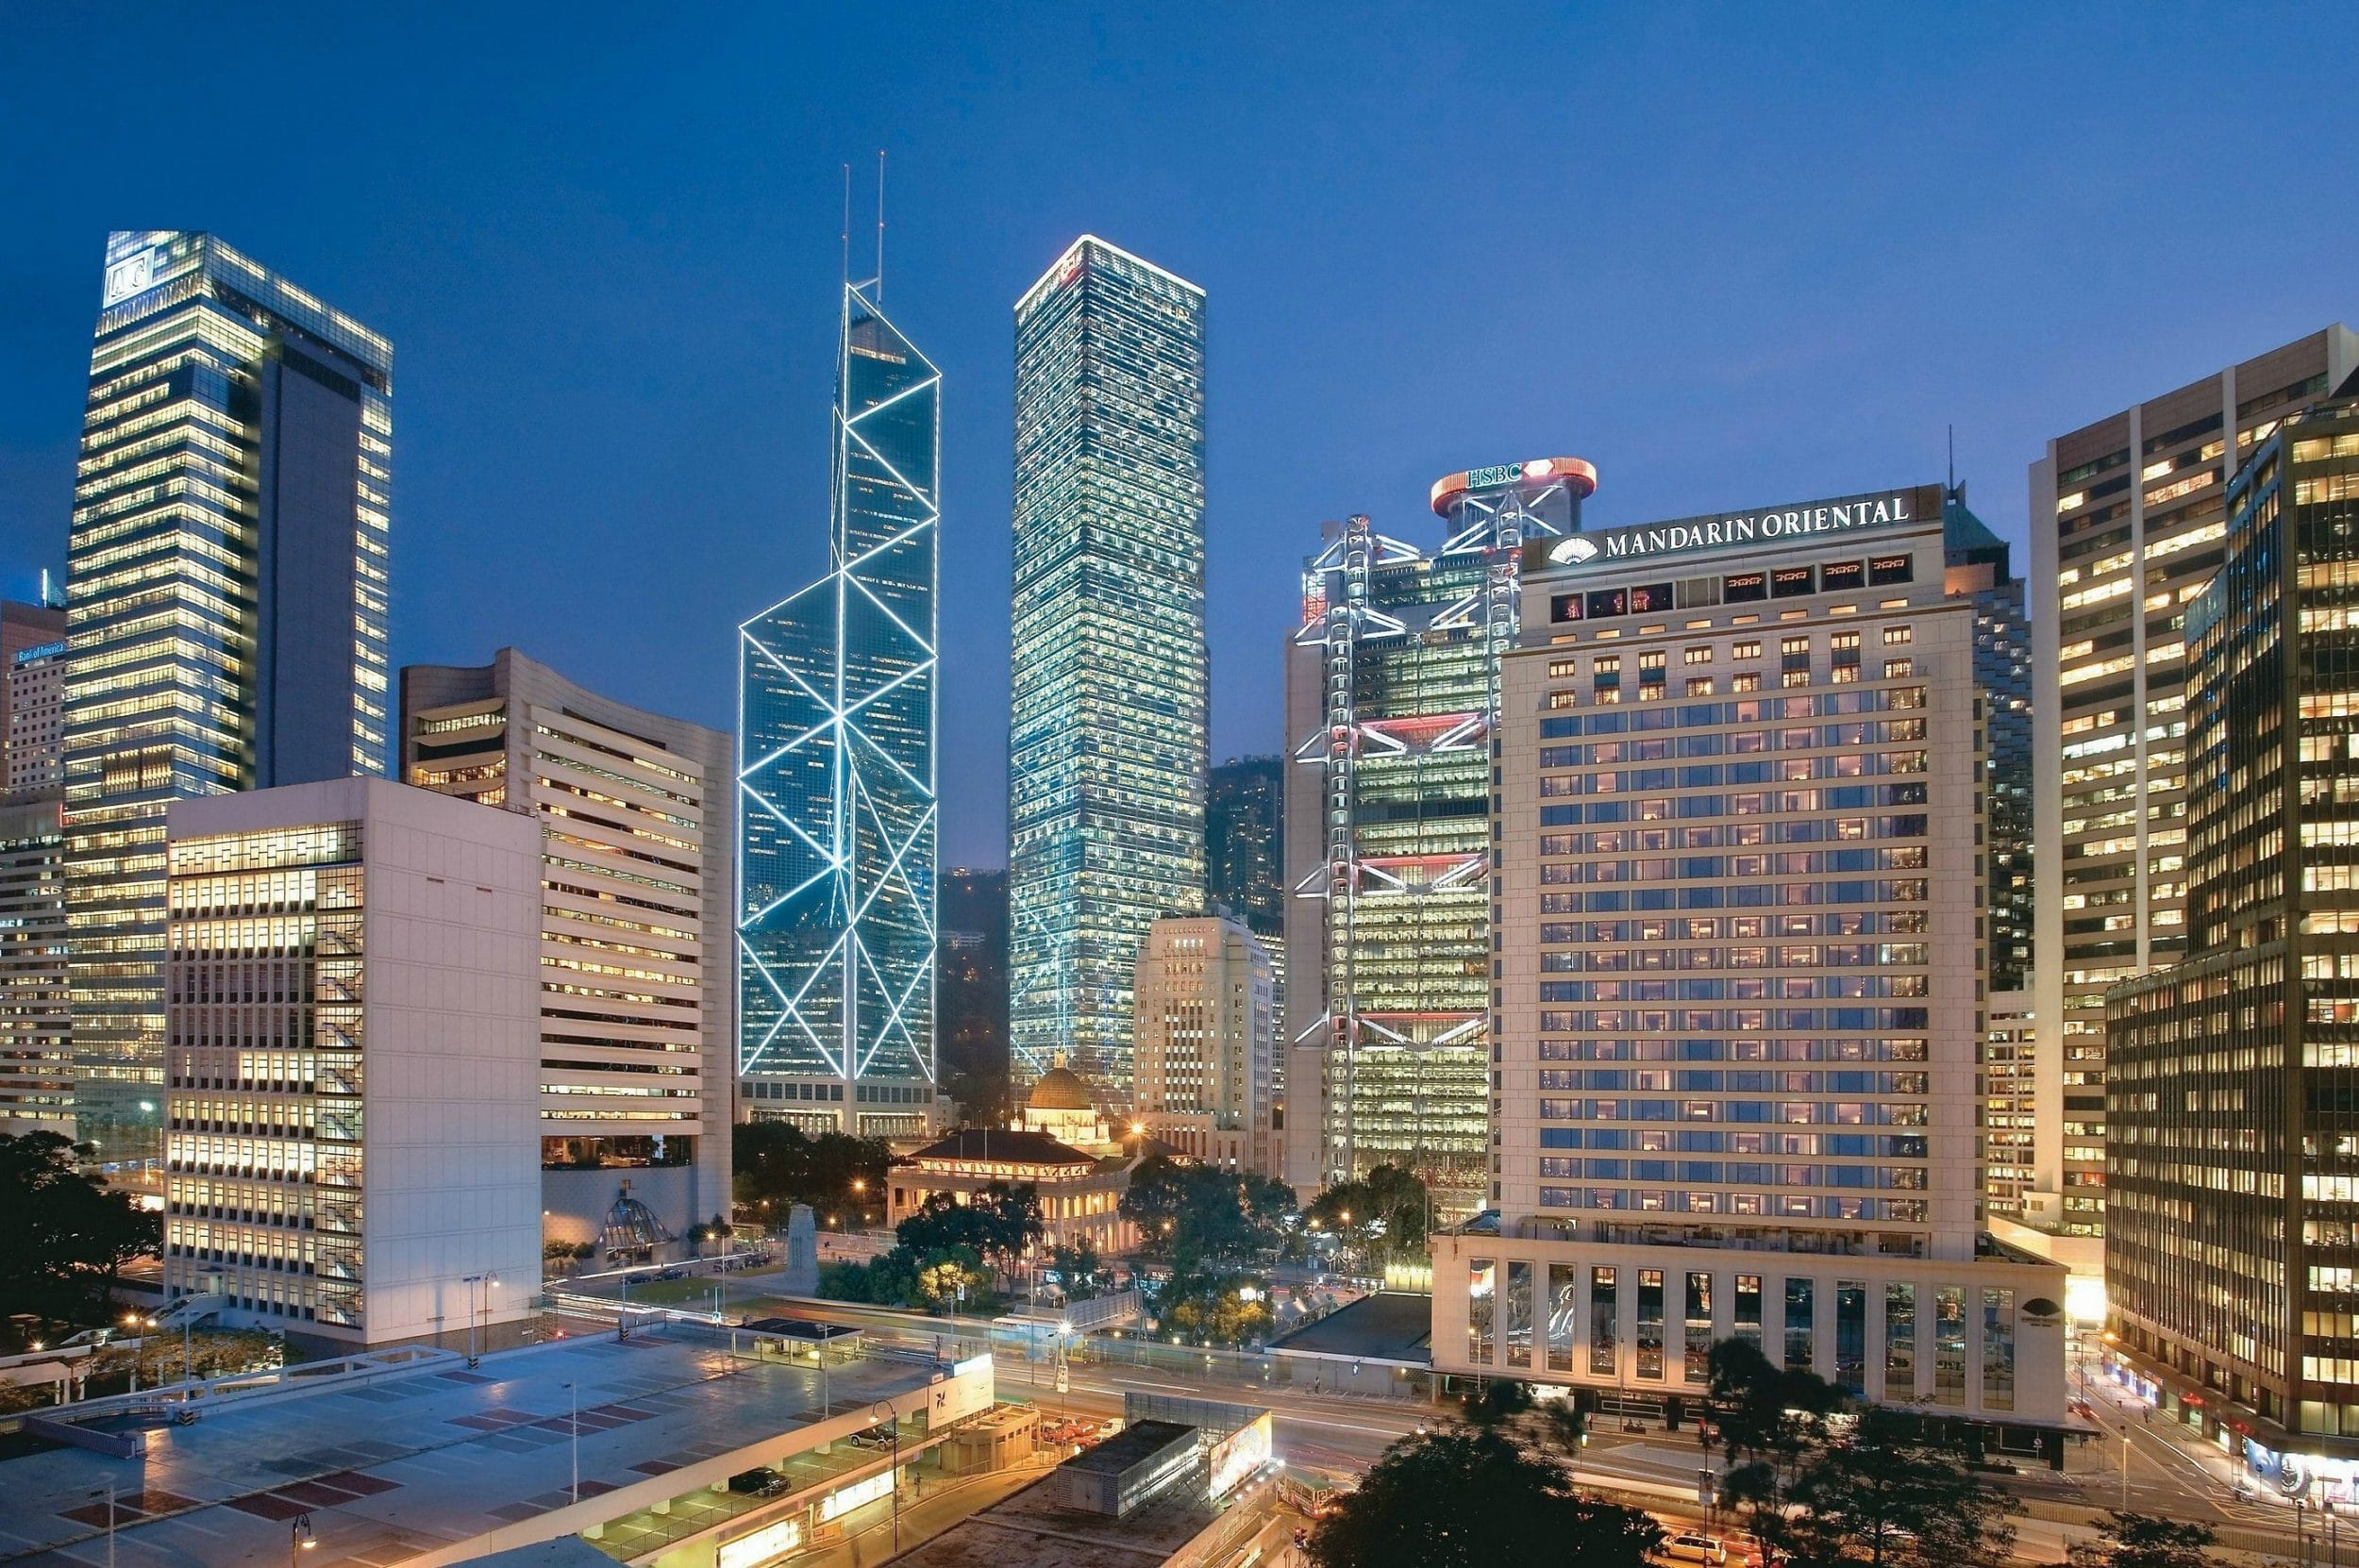 Mandarin Oriental, Hong Kong is one of the best luxury hotels in the world.